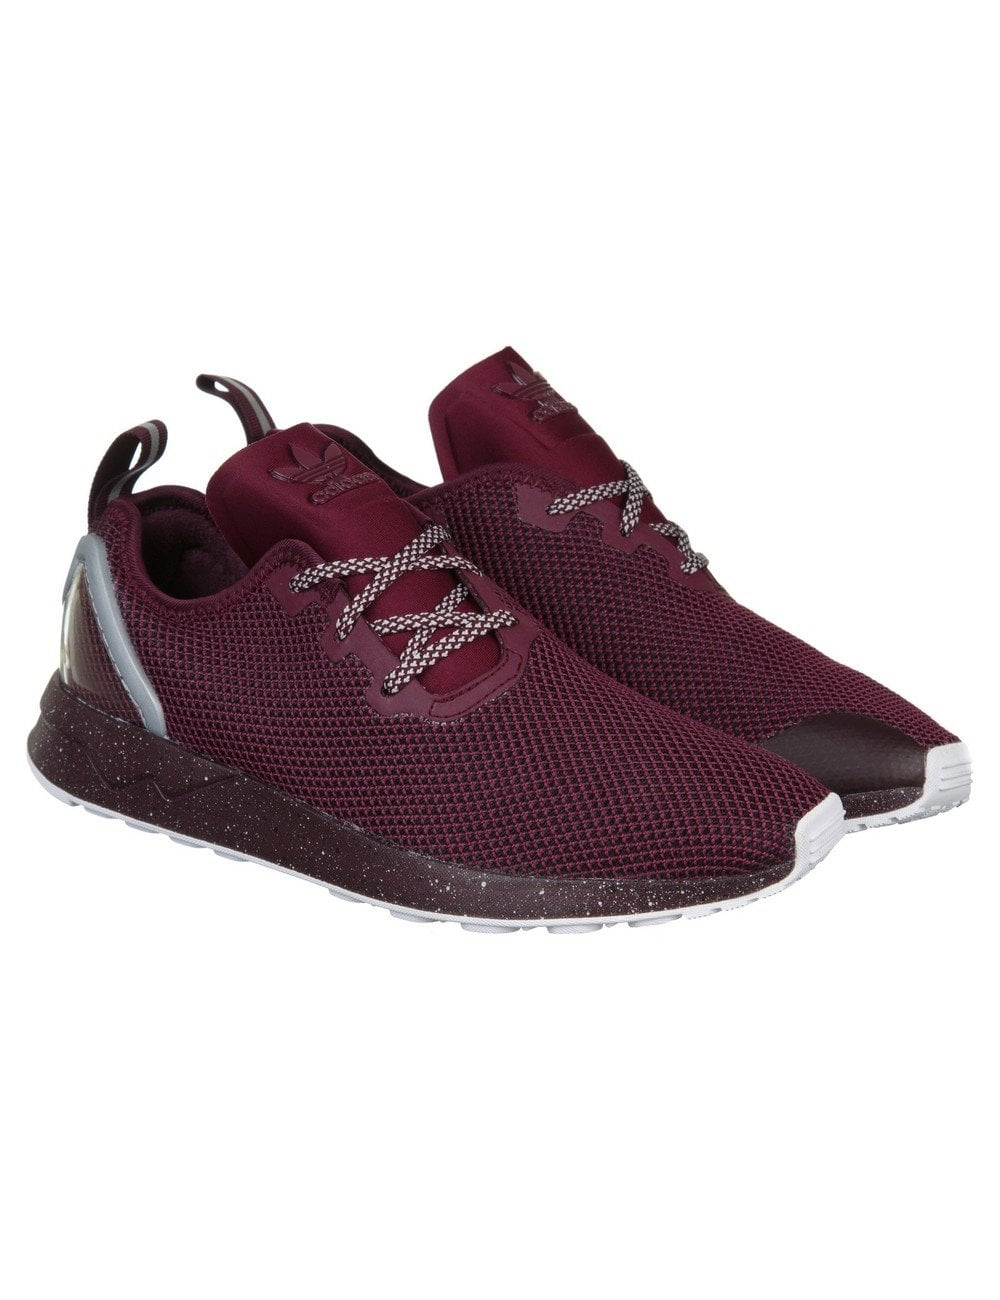 cd0d0295d Adidas Originals ZX Flux Racer ASYM Shoes - Maroon - Footwear from ...